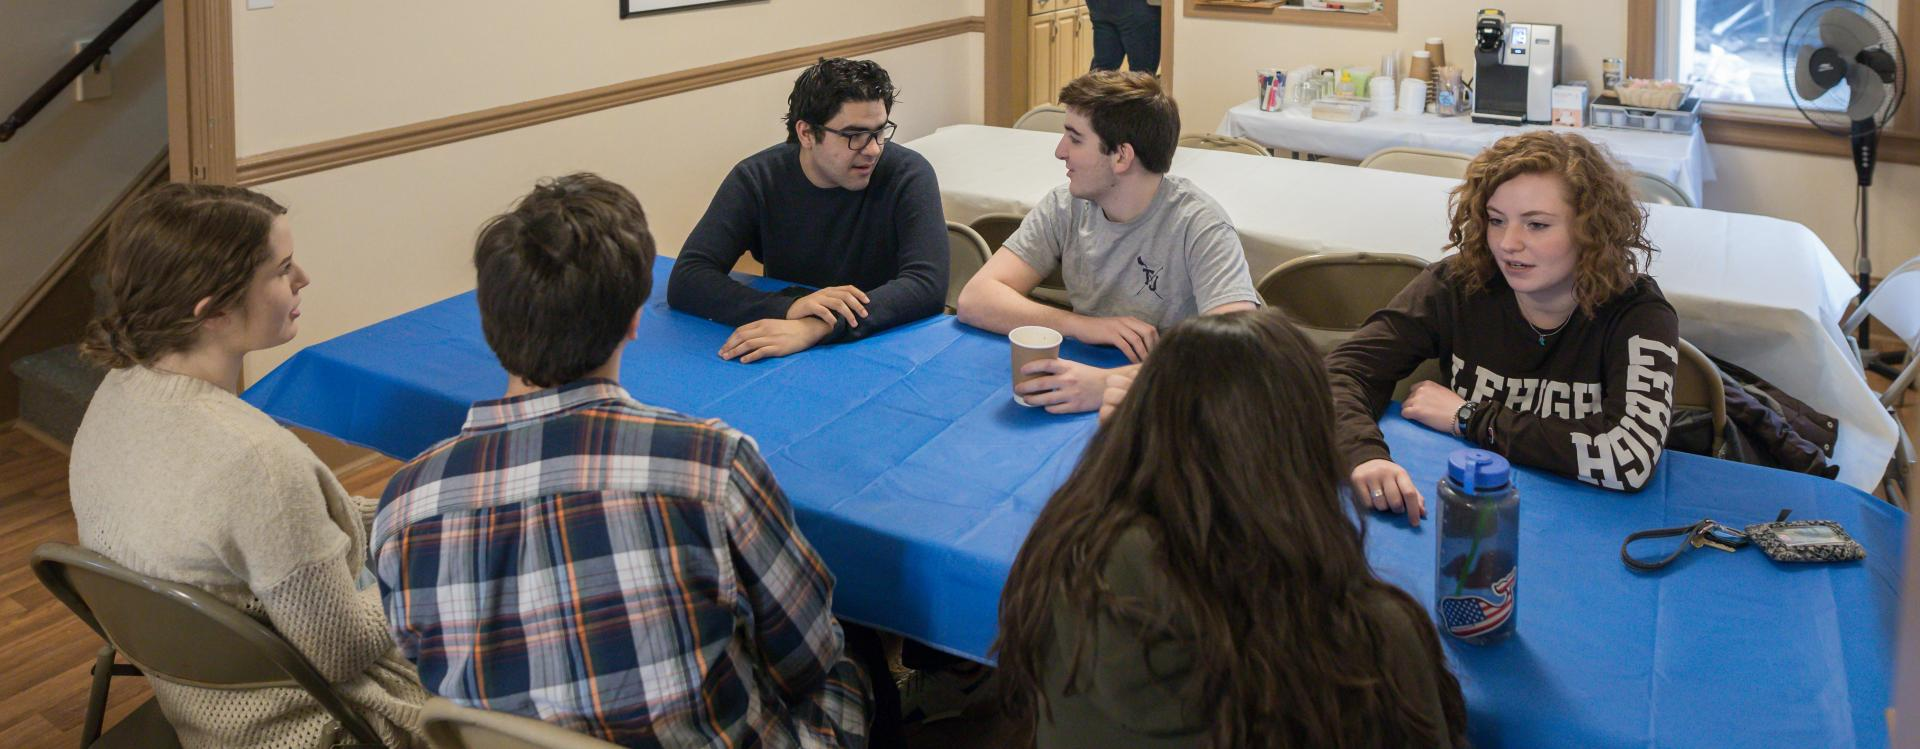 group of students talking at a table